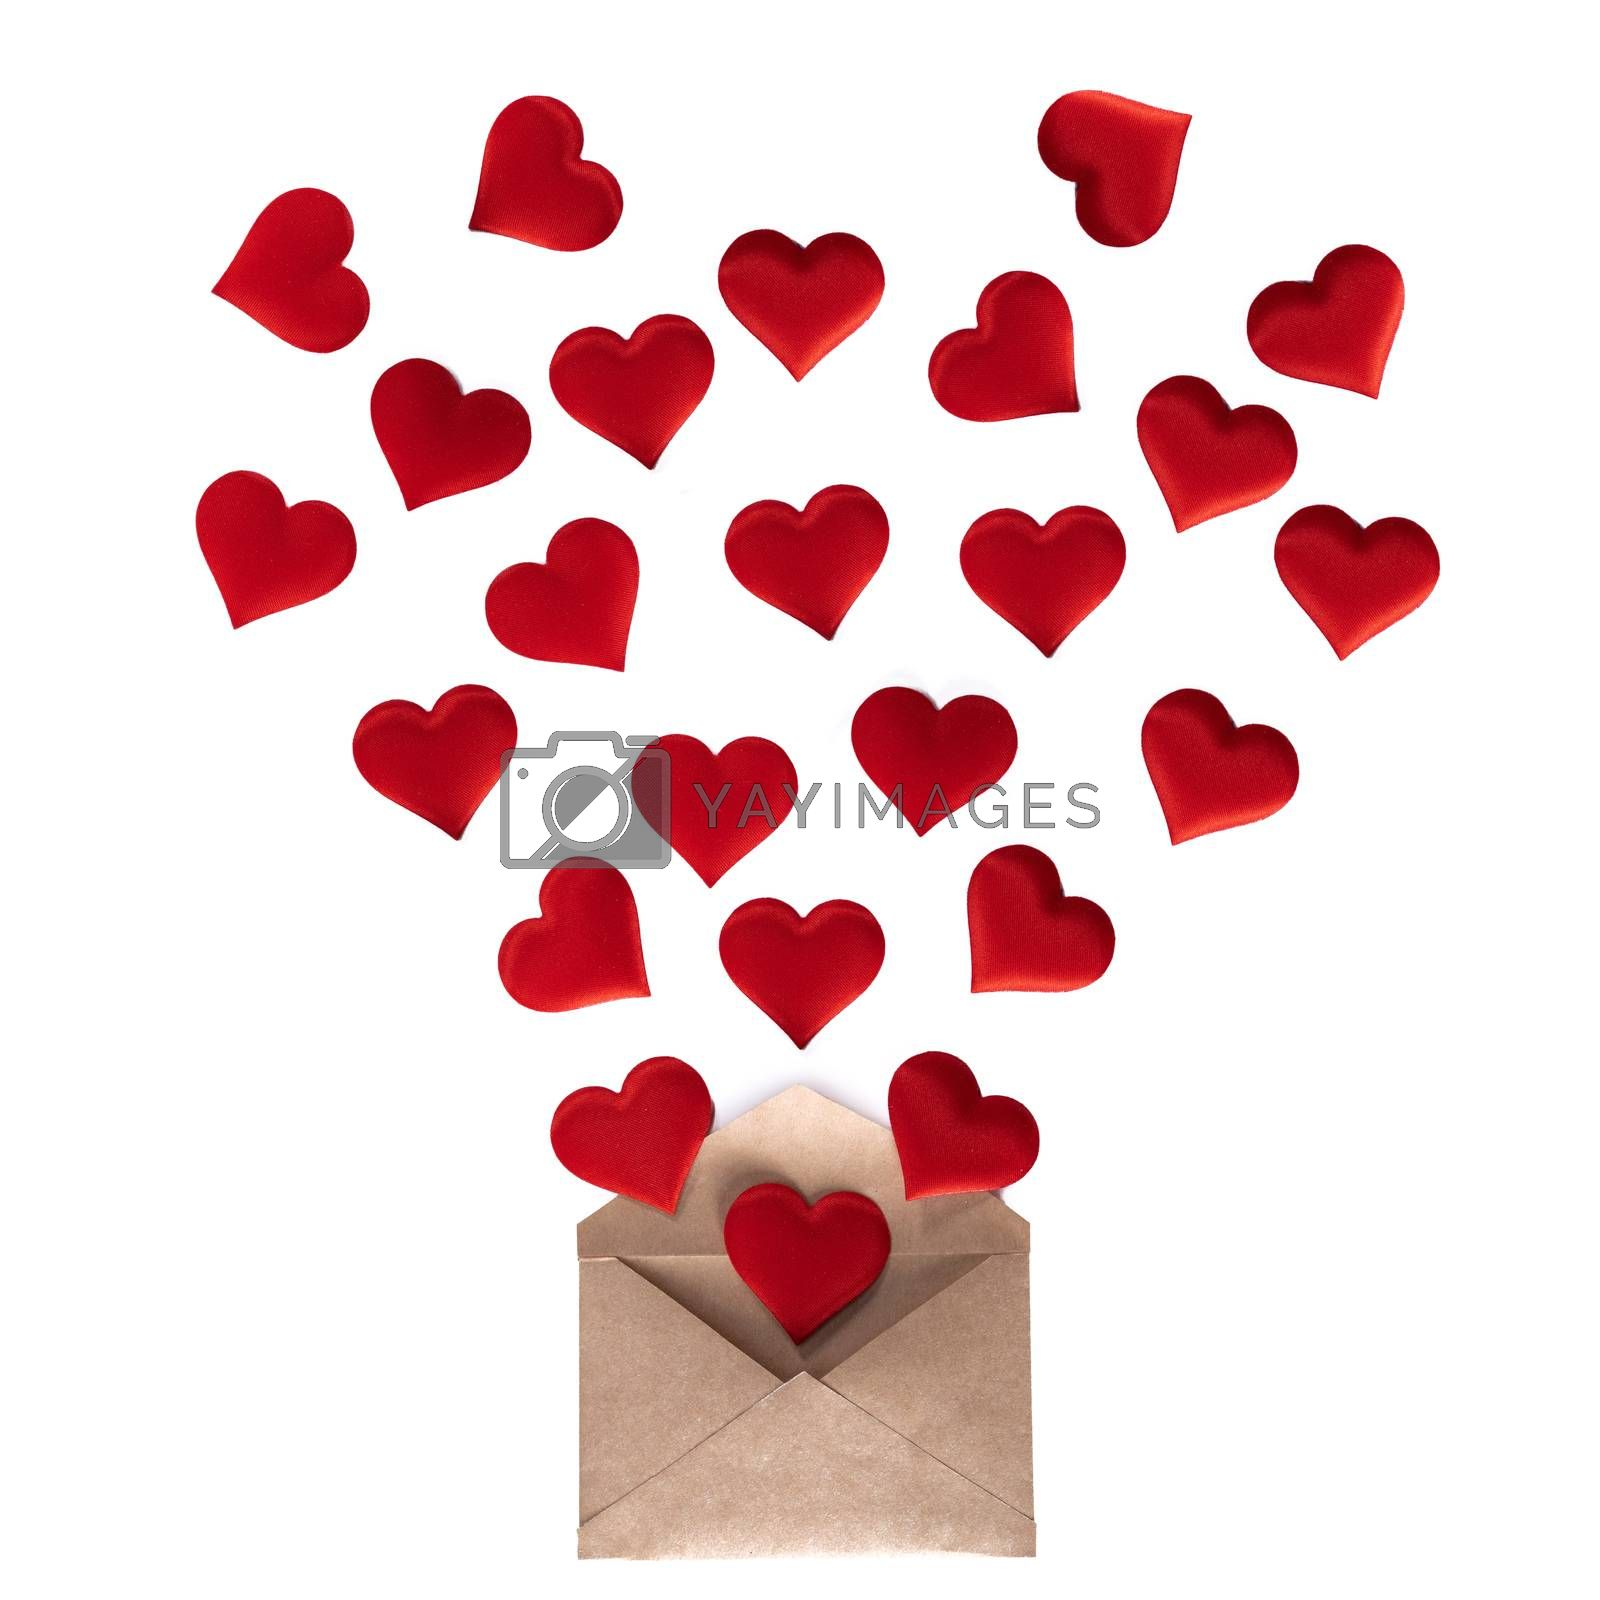 Valentine day love letter, envelope of craft paper with red hearts heap spread on white background.